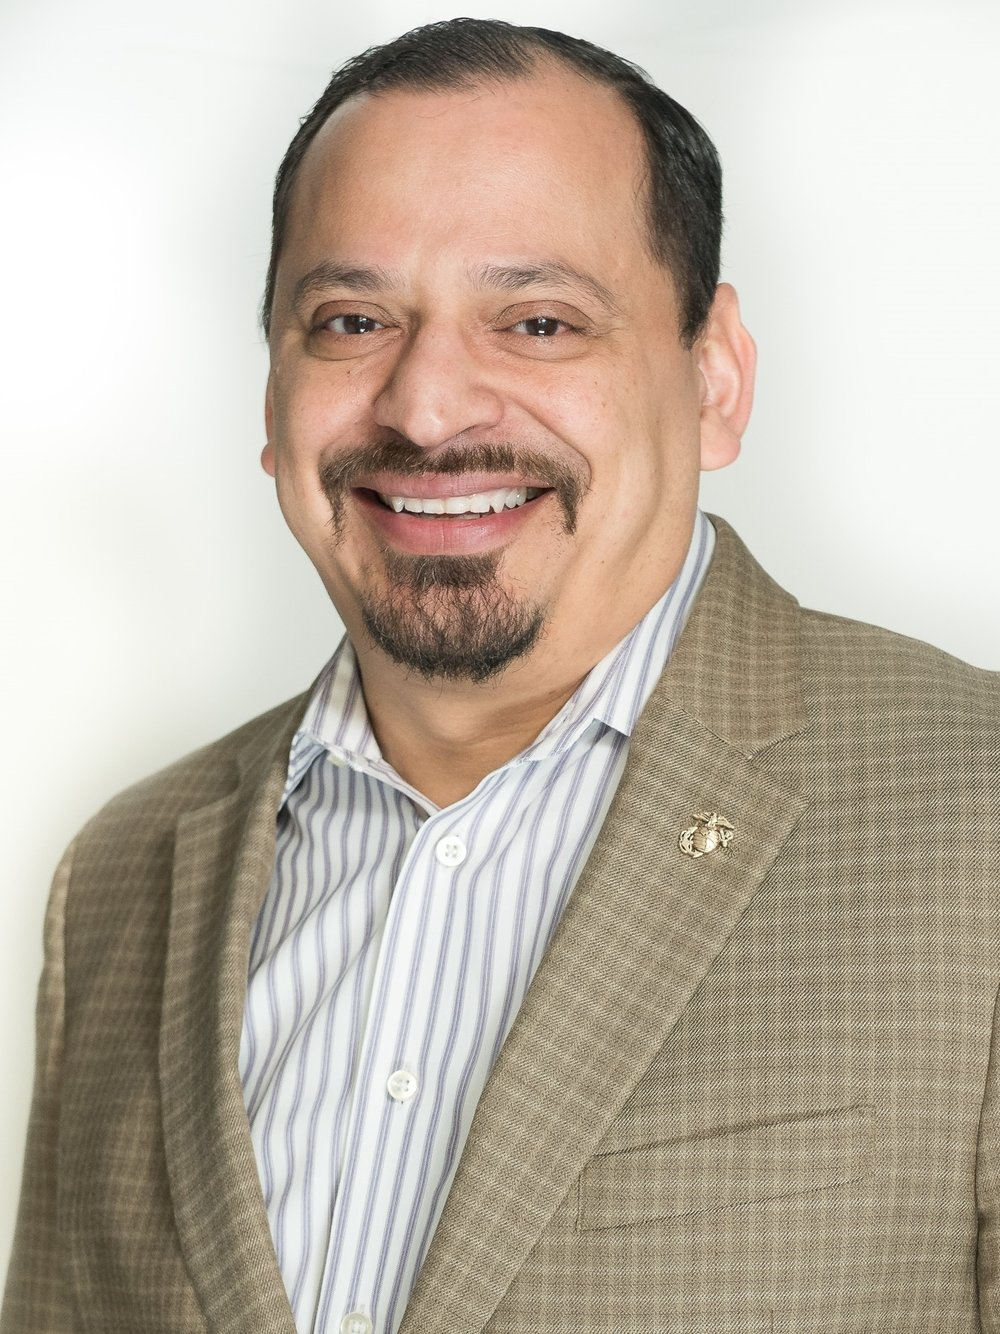 Carlos Lopez <i>CEO - Owner/Founder</i>